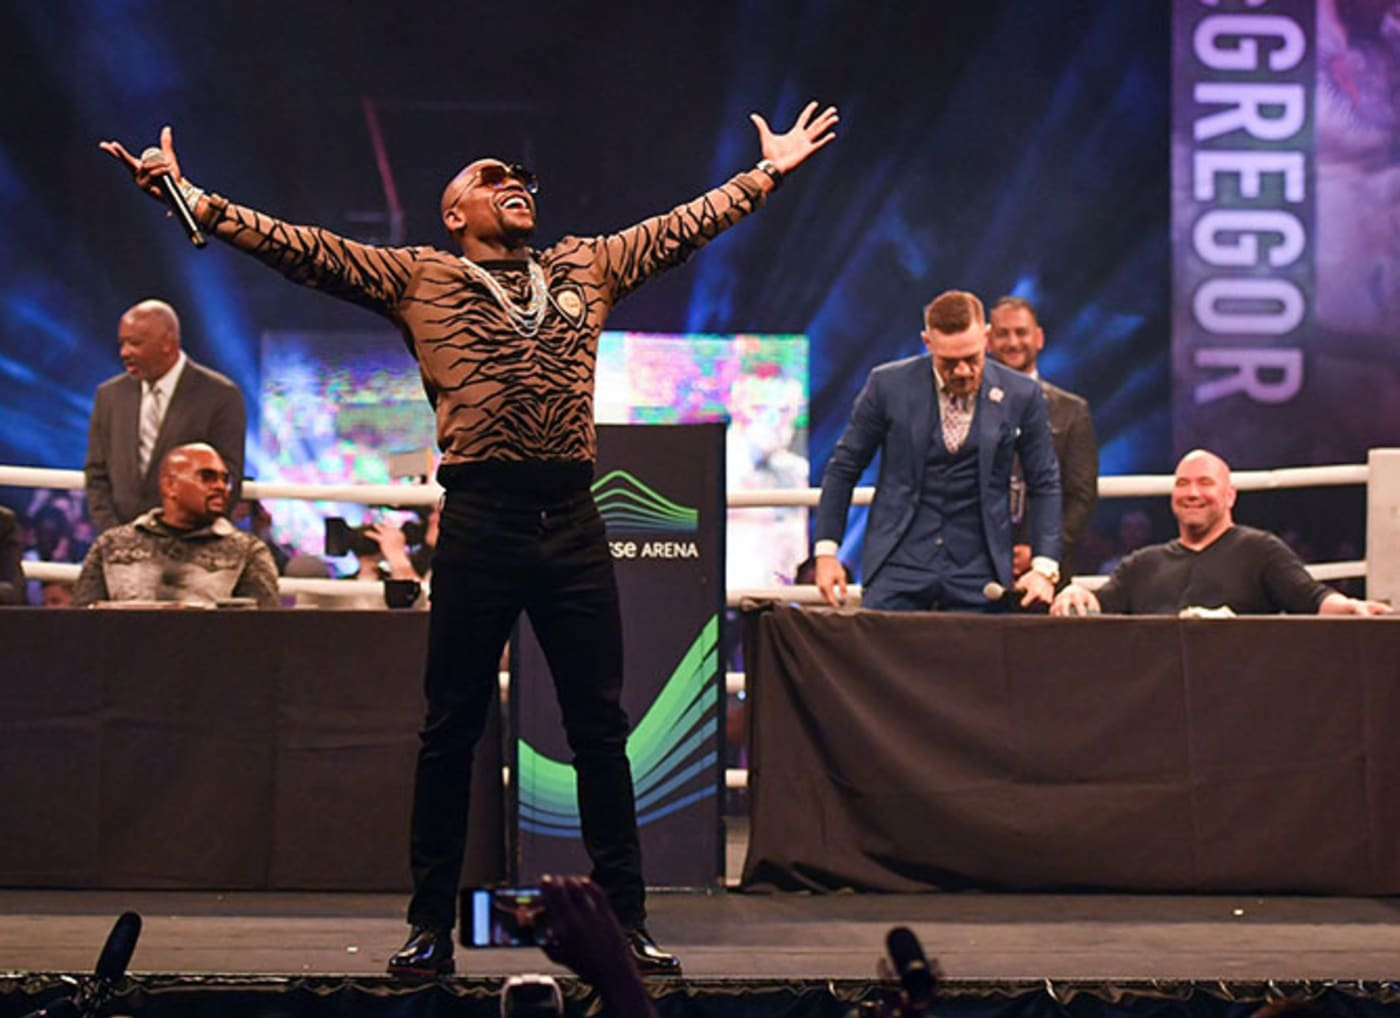 floyd mayweather gloating at press conference